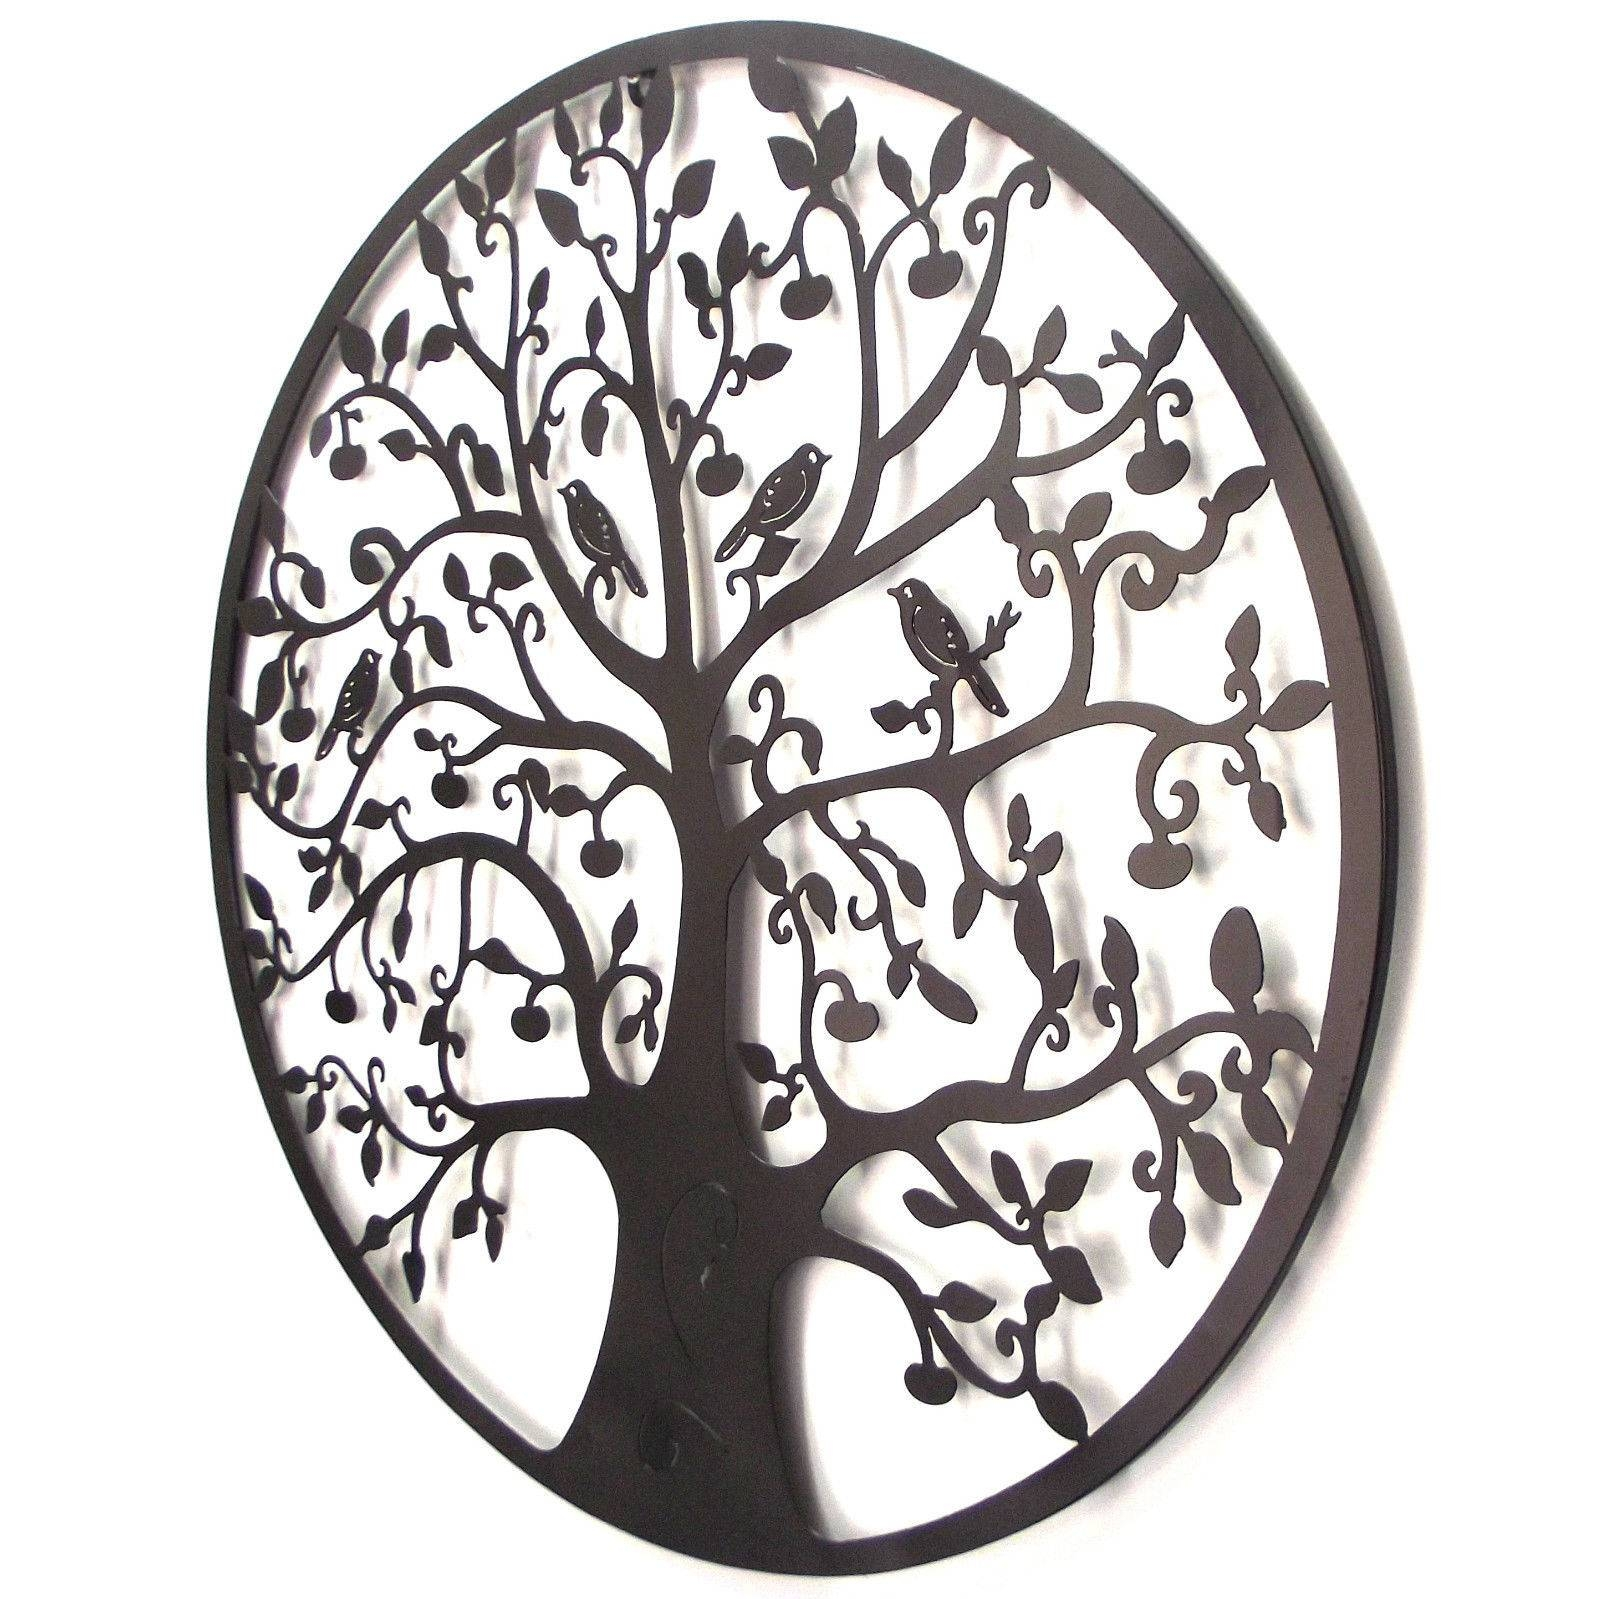 Black Tree Of Life Wall Art Hanging Metal Iron Sculpture Garden Throughout Most Recent Tree Of Life Metal Wall Art (View 1 of 20)